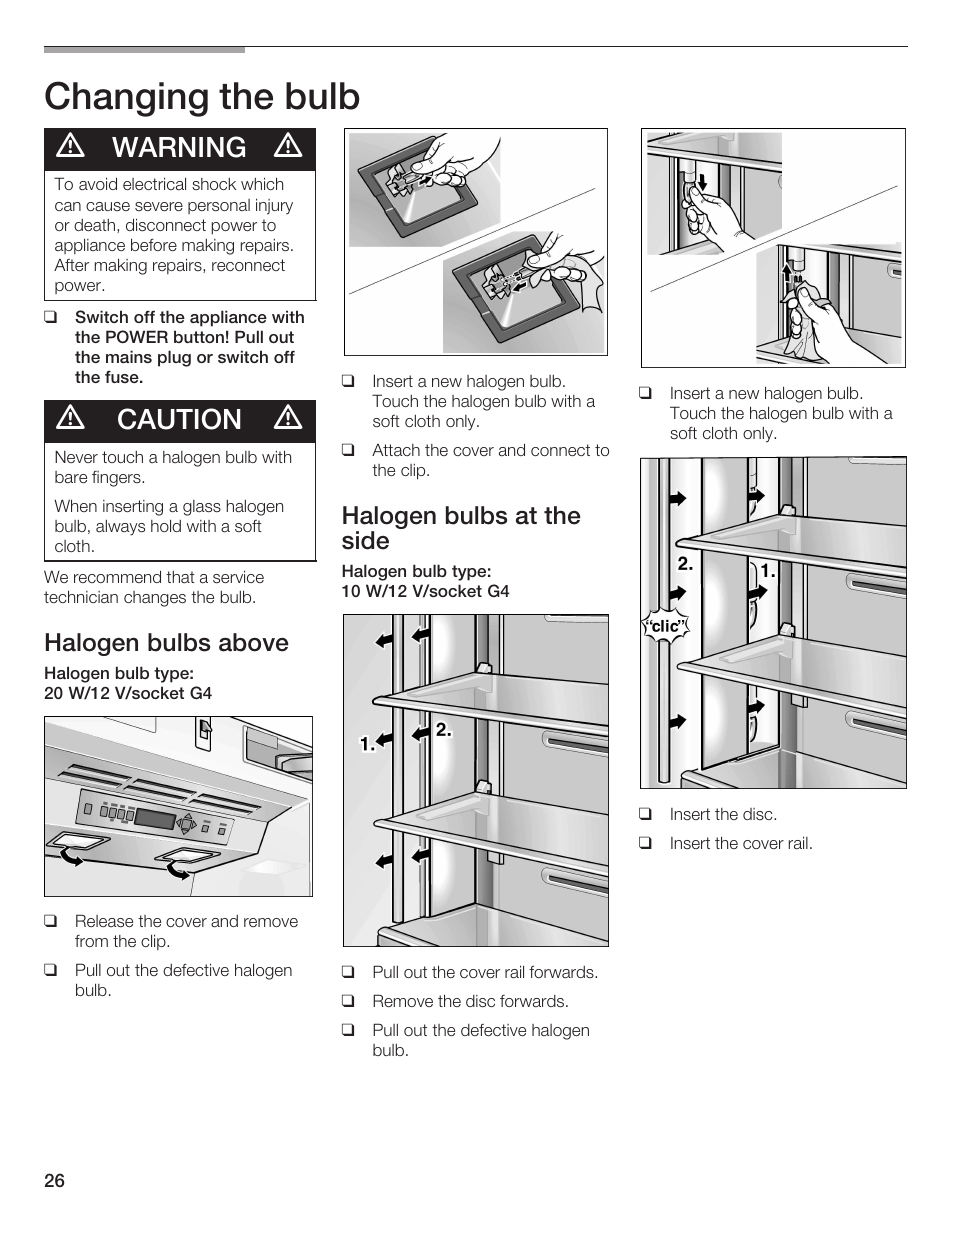 Changing The Bulb Warning Caution Thermador Bottom Freezer Warn Halogen Light Wiring Diagram 9000189698 User Manual Page 26 88